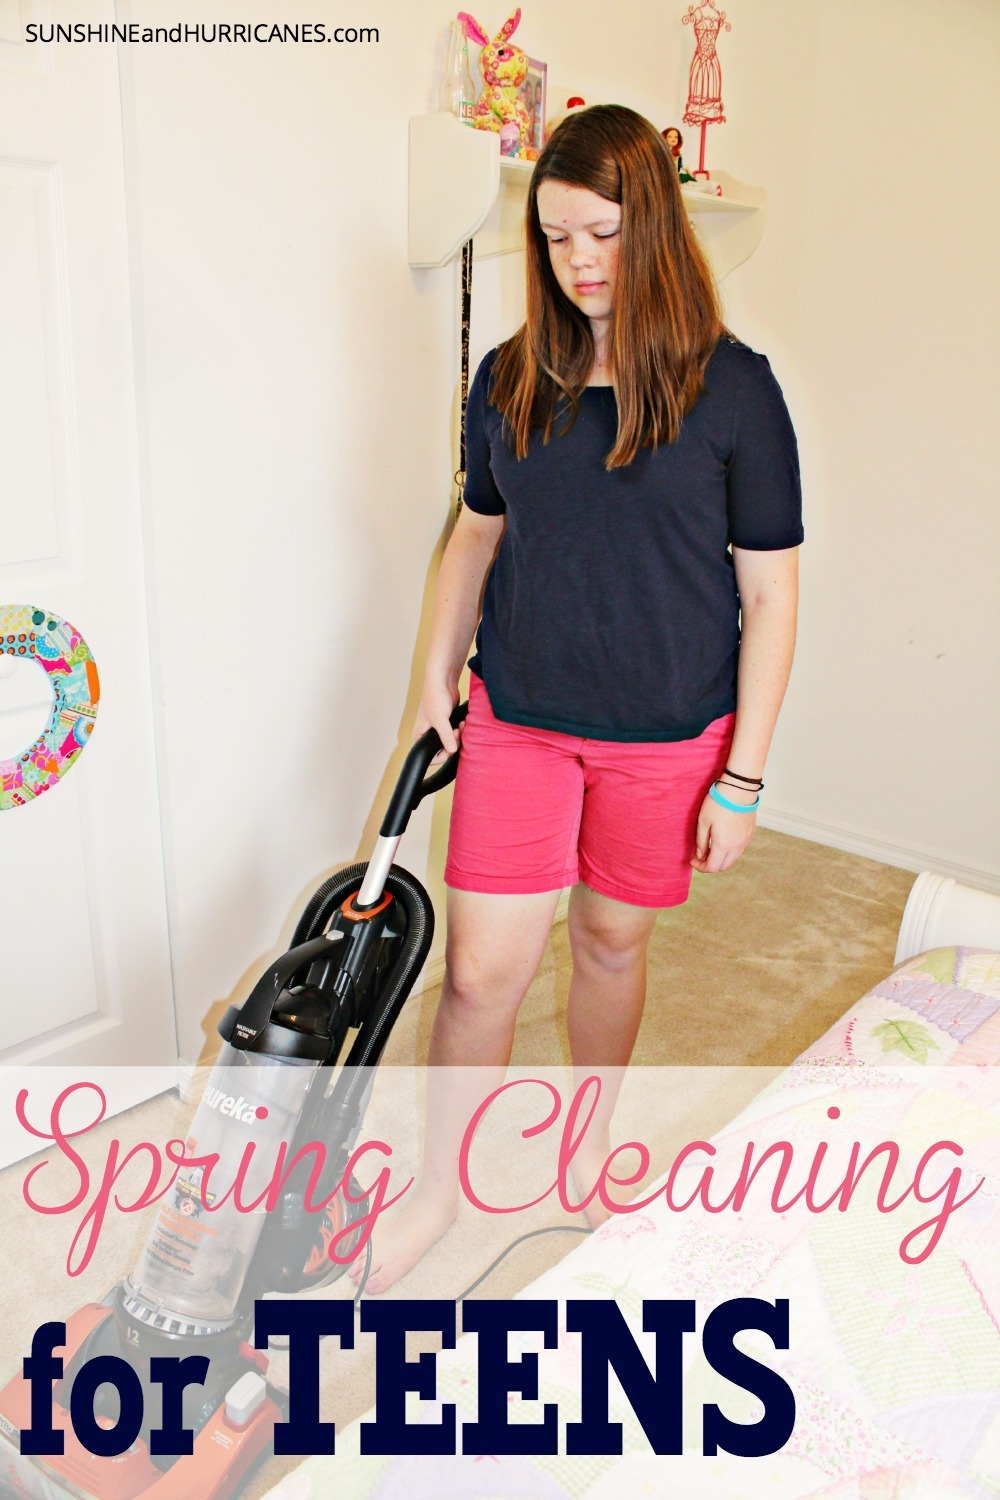 Do you want to raise confident, responsible and independent children? Then giving them chores and teaching them how to maintain their rooms is essential. Give your teens and tweens ownership of taking care of their own space and make sure they help around the rest of the house. They really will thank you for it some day! Spring Cleaning for Tweens. SunshineandHurricanes.com